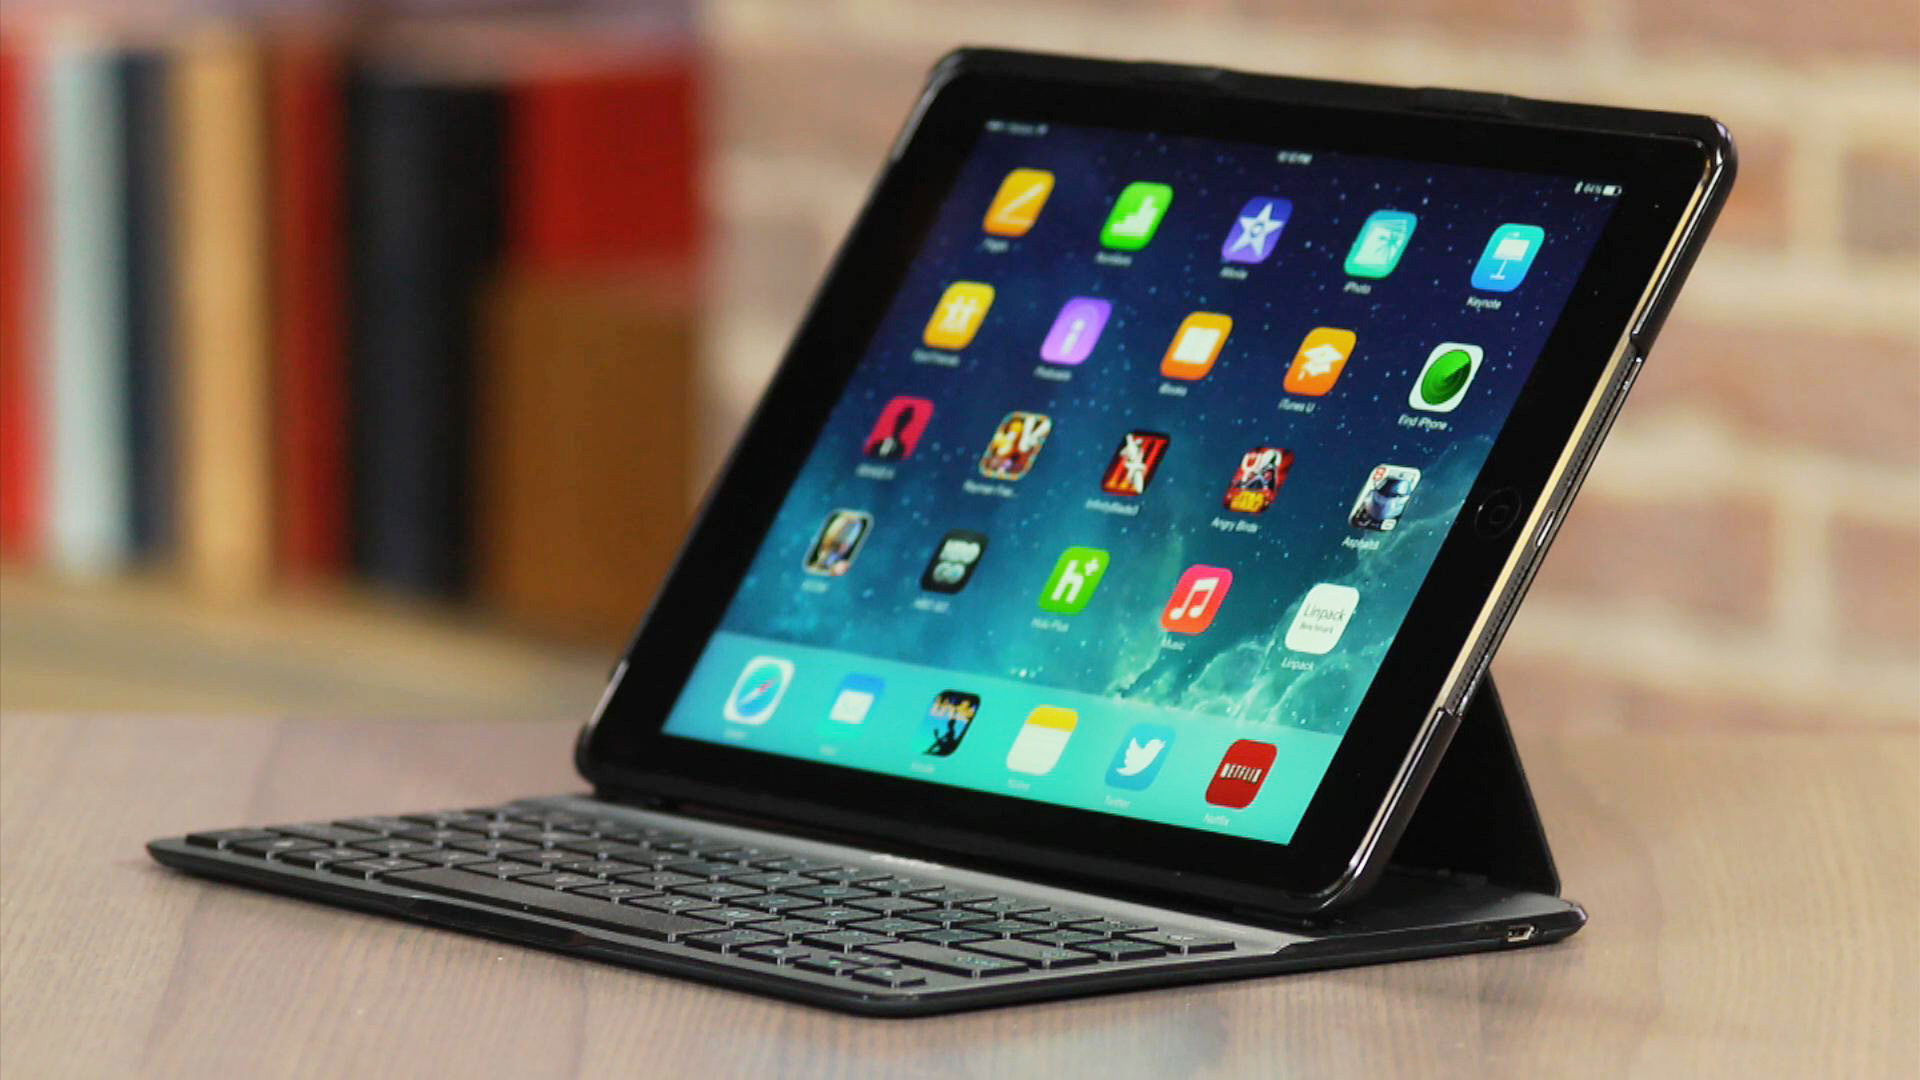 Video: Belkin Qode Ultimate Keyboard Case for iPad Air earns its name